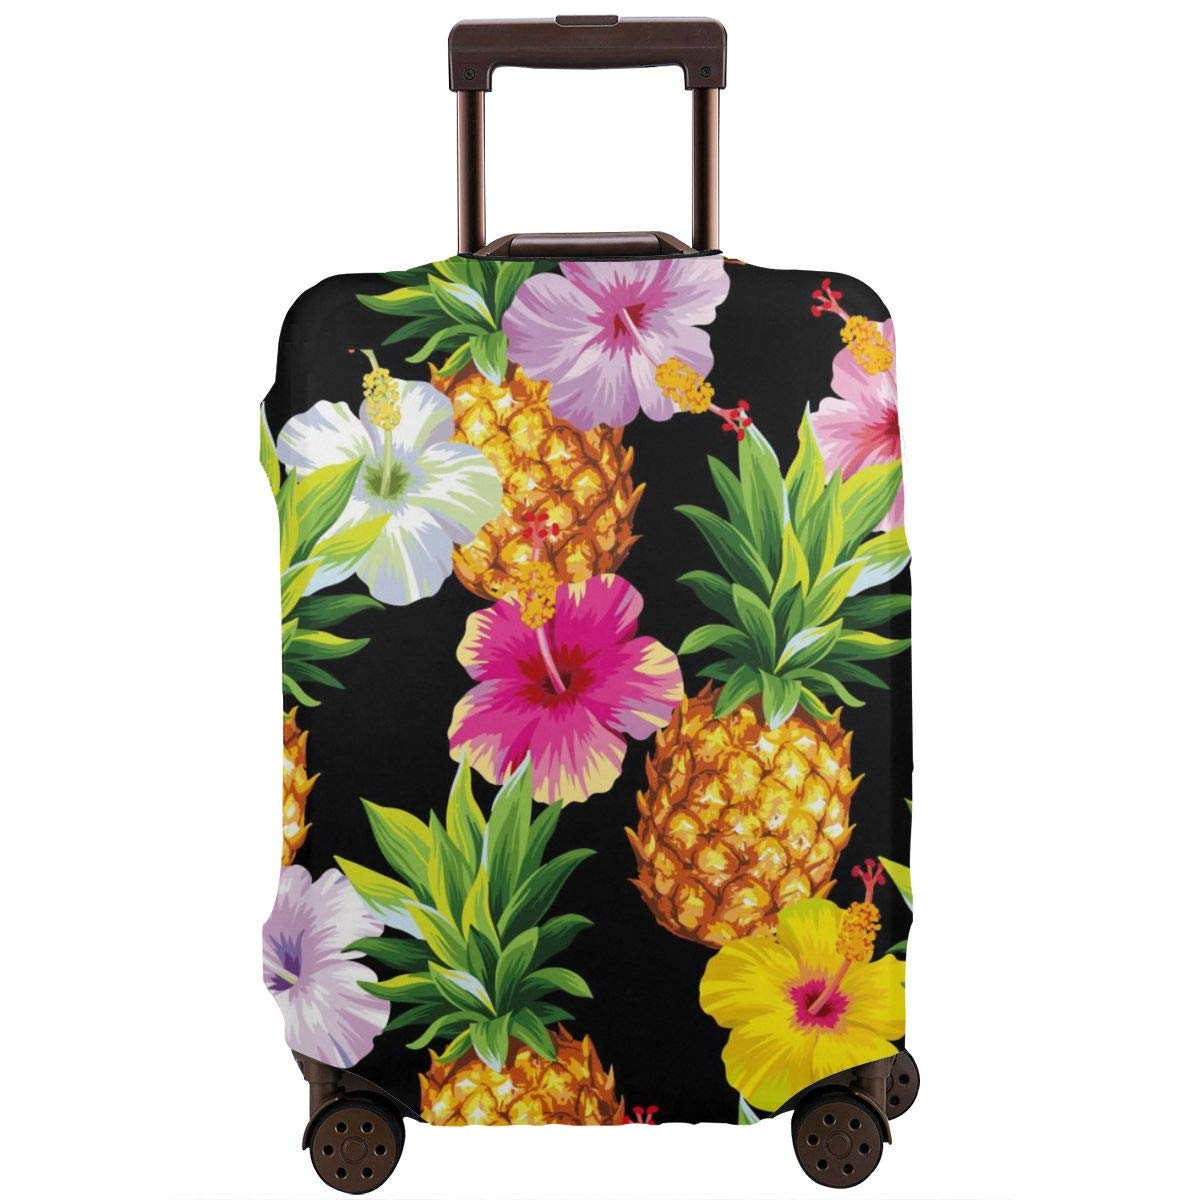 Amazon.com: NiYoung Travel Luggage Cover Suitcase Protective ...